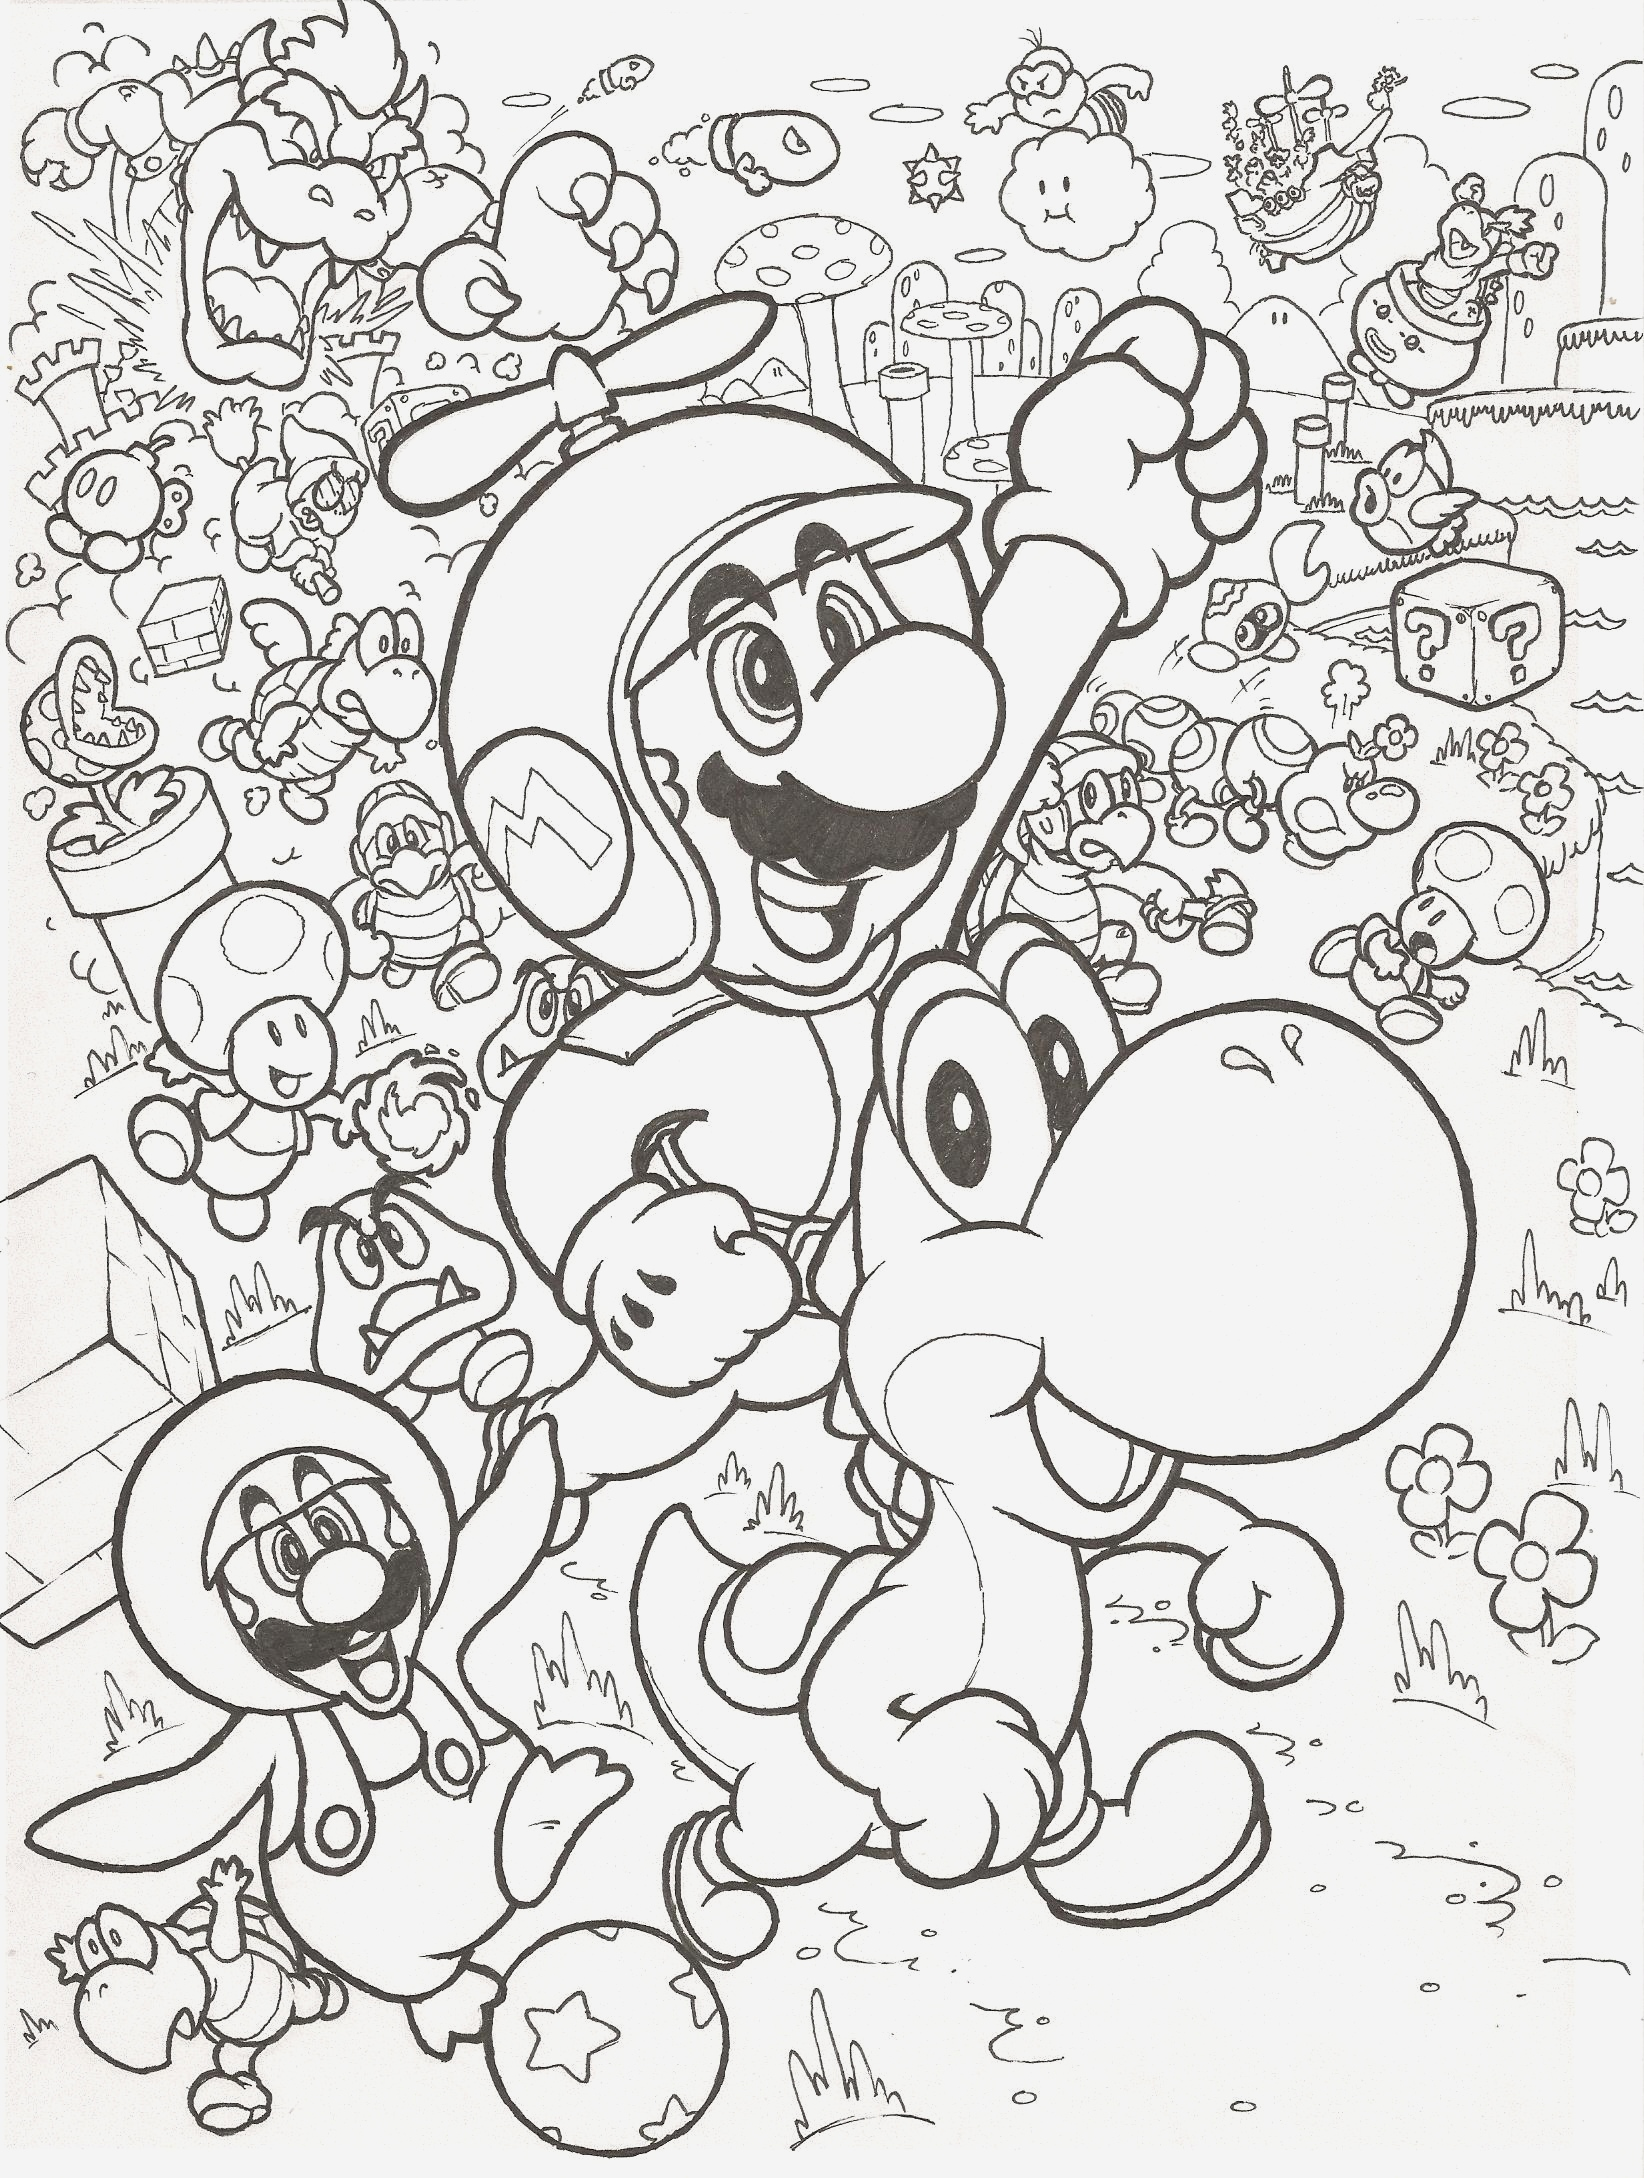 Coloriage Mario Kart New 24 Most Mean Mario Coloring Pages Kart Deluxe Collection Of Coloriage Mario Kart